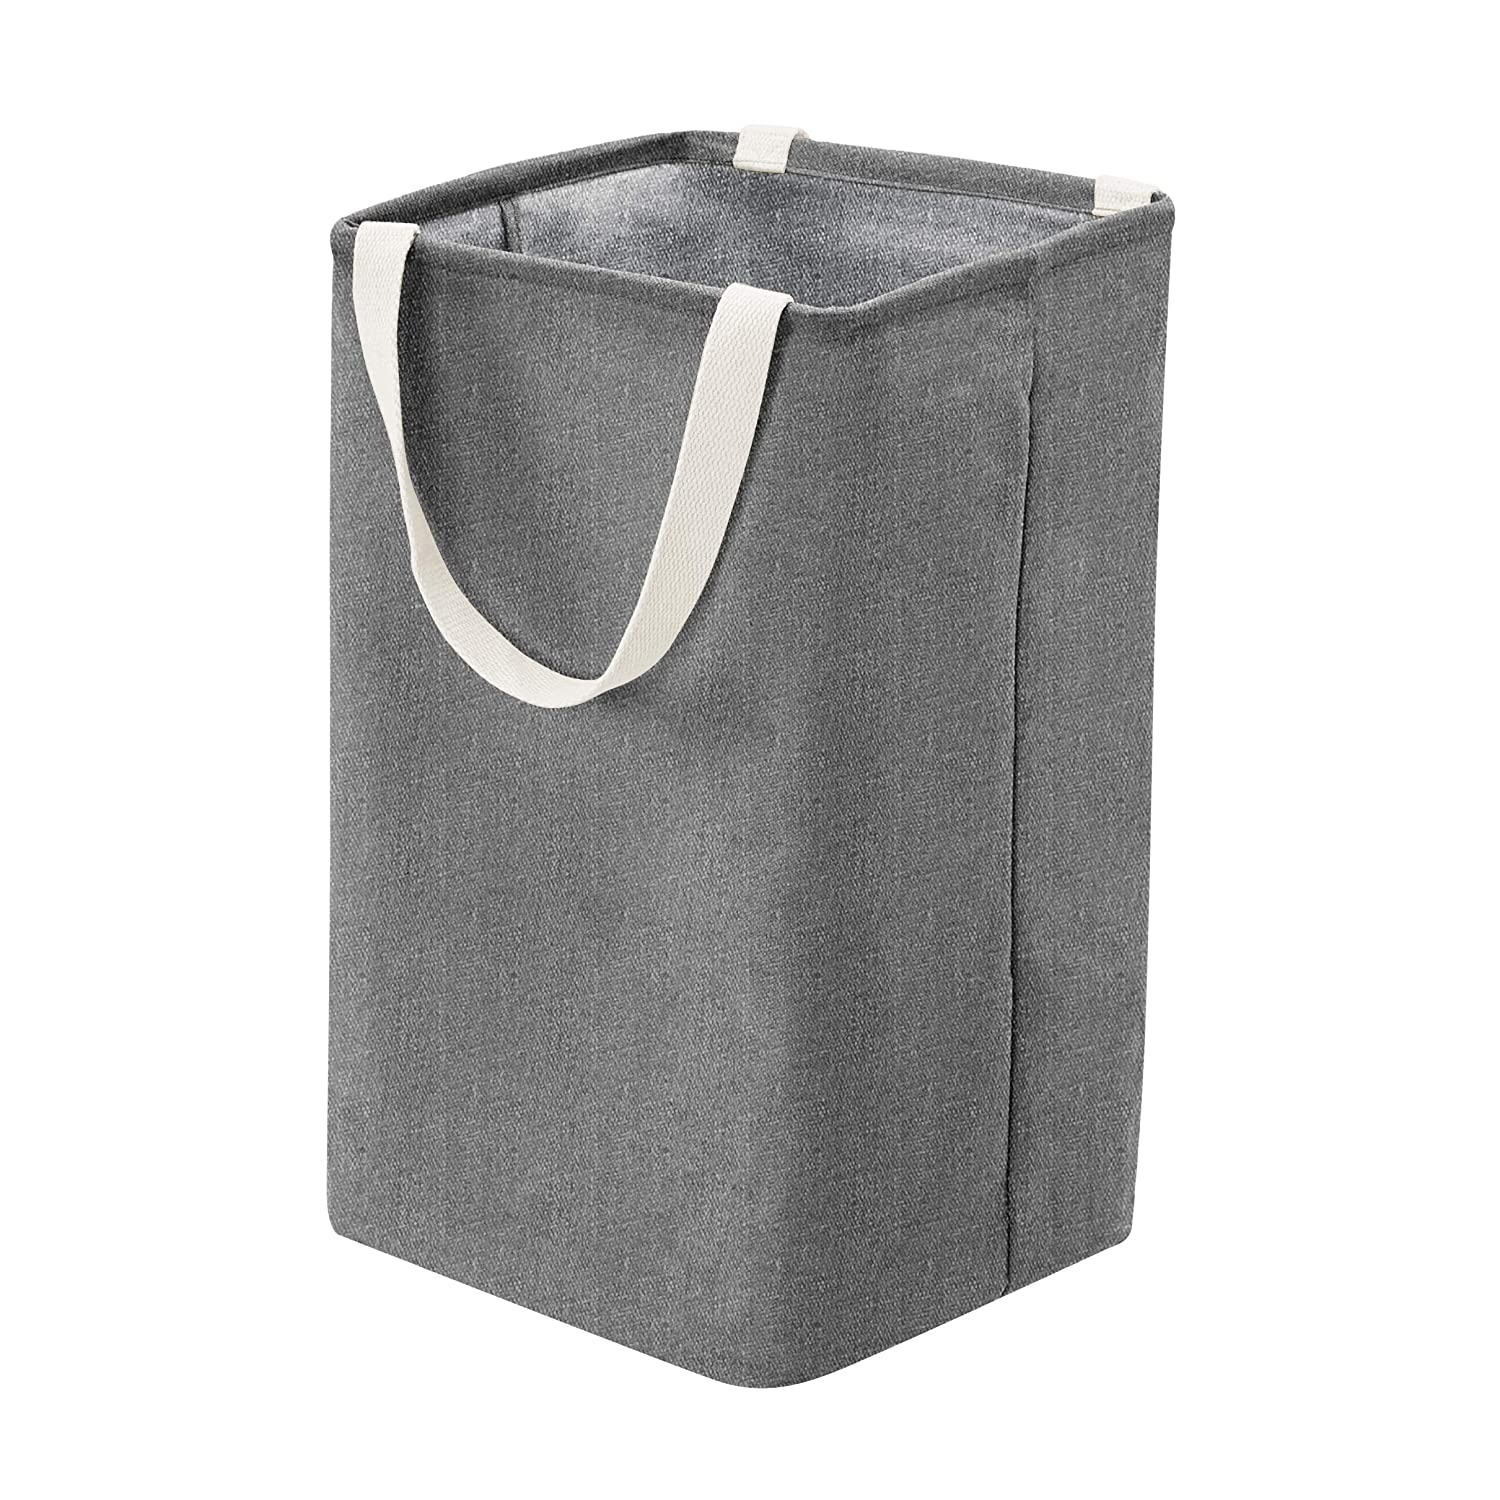 AmazonBasics Fabric Storage Bin - Tall Cube, Charcoal Grey